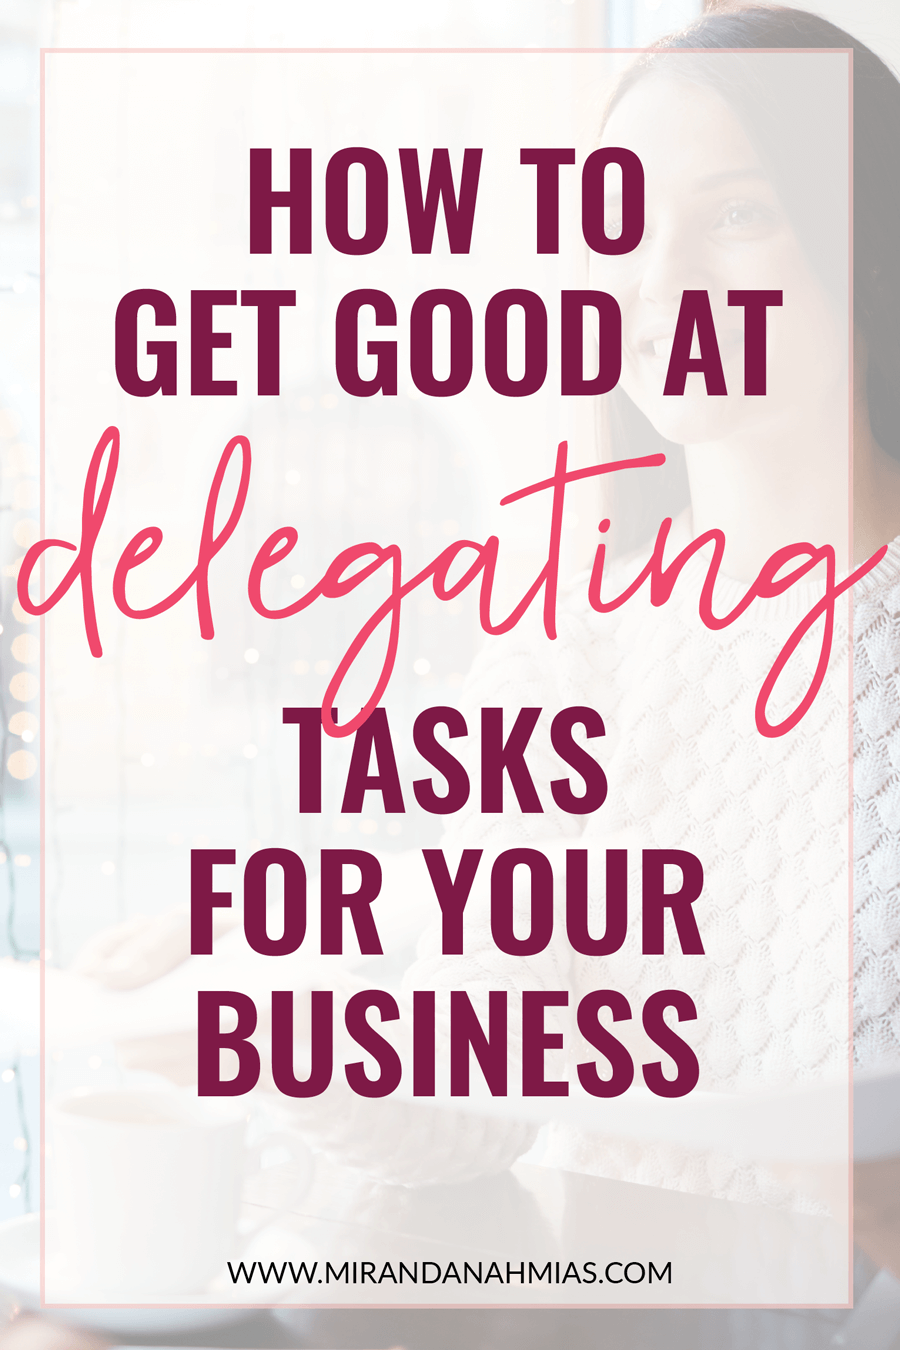 Suck at delegating? Worried about hiring a team? Here's exactly how to get GOOD at delegating tasks in your business | Miranda Nahmias & Co. Systematic Marketing